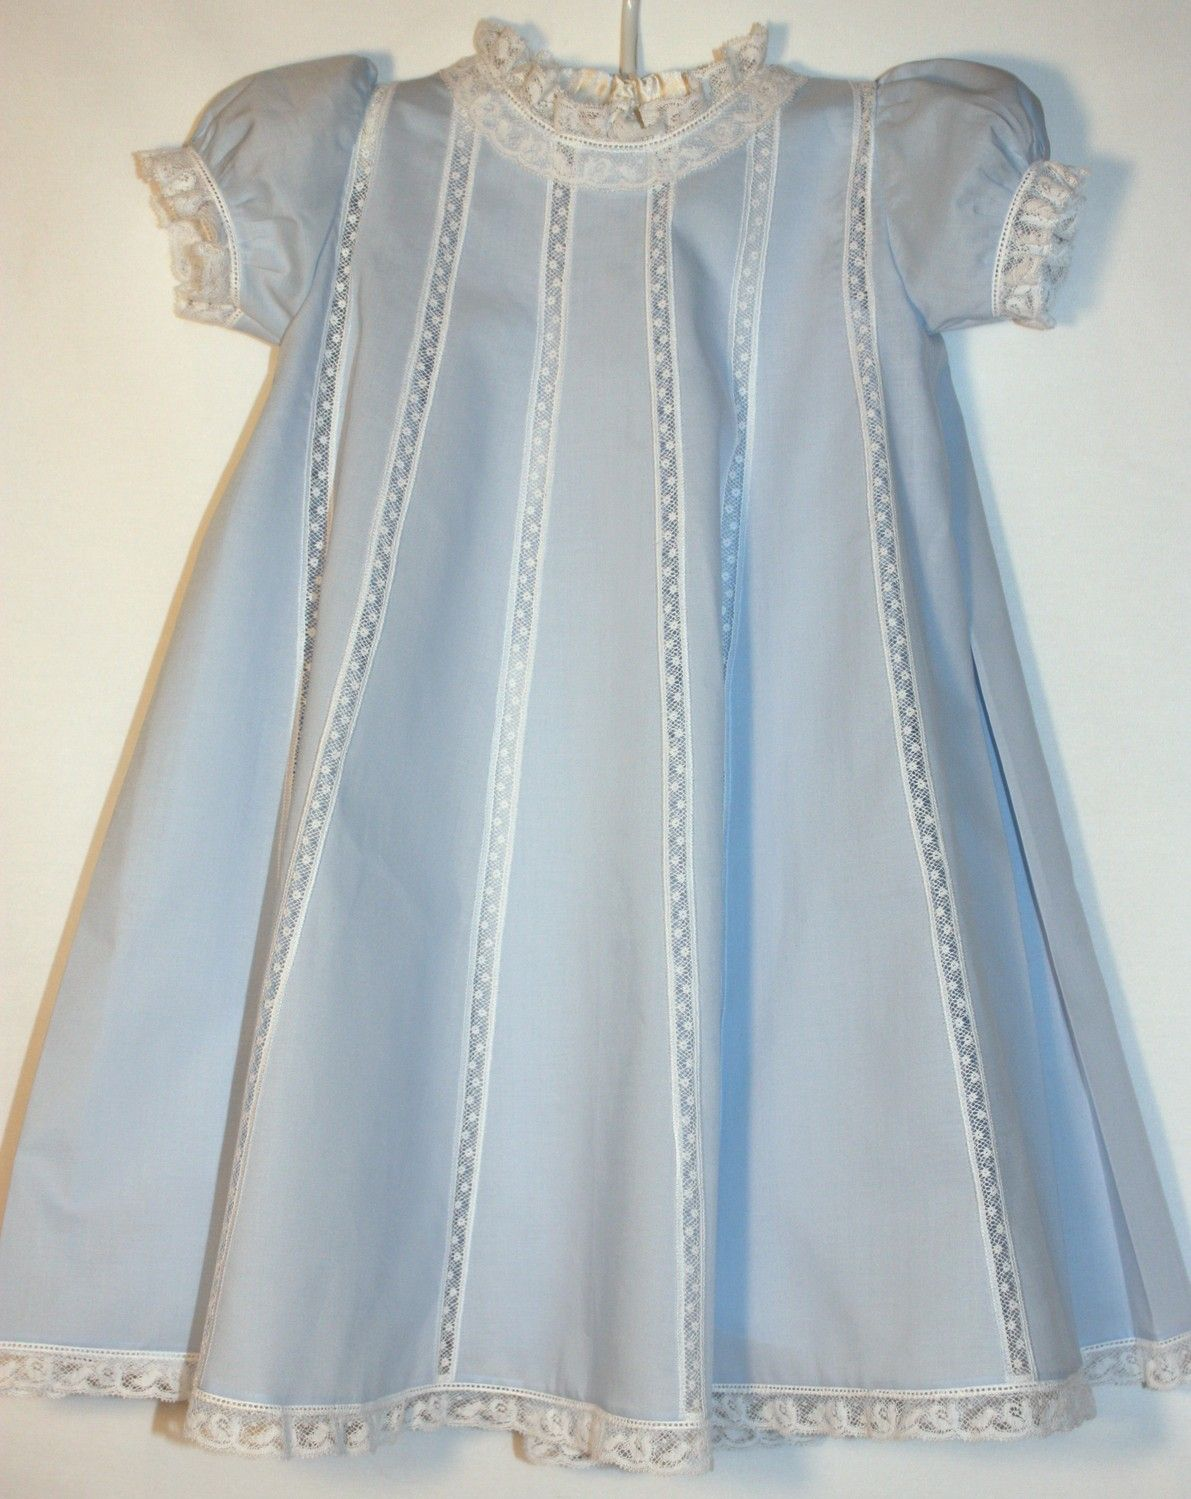 Simple and Sweet; this looks like the Mary Claire pattern. A perfect baby girl's christening ourfit